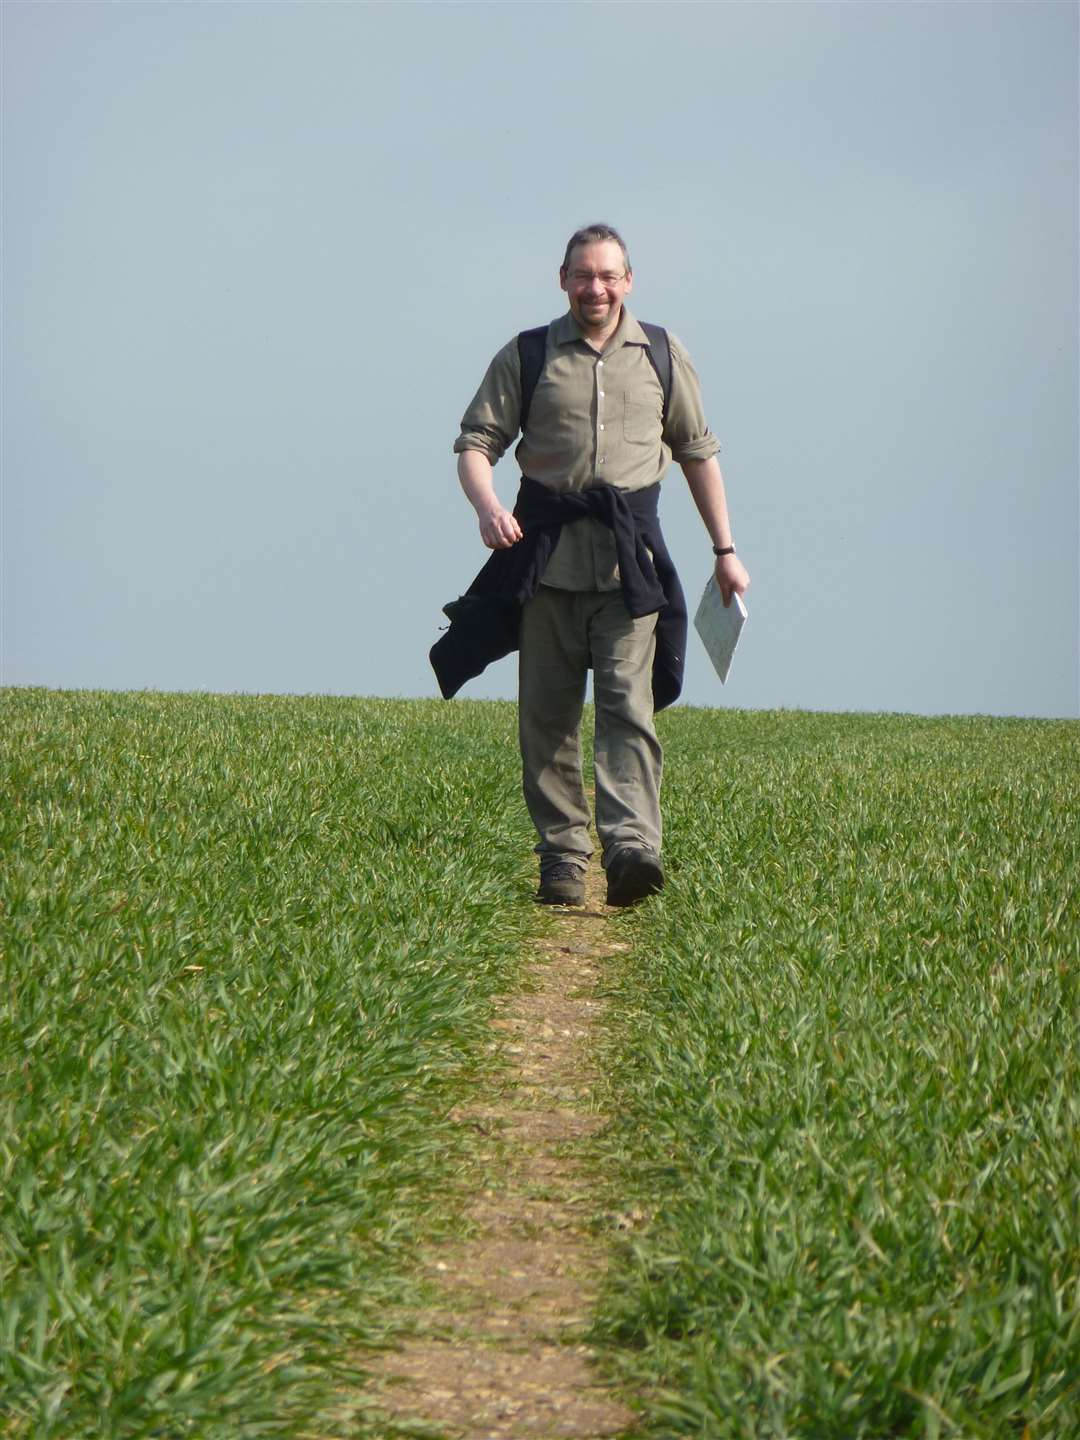 suffolk walking festival - David Falk, organiser (9026612)